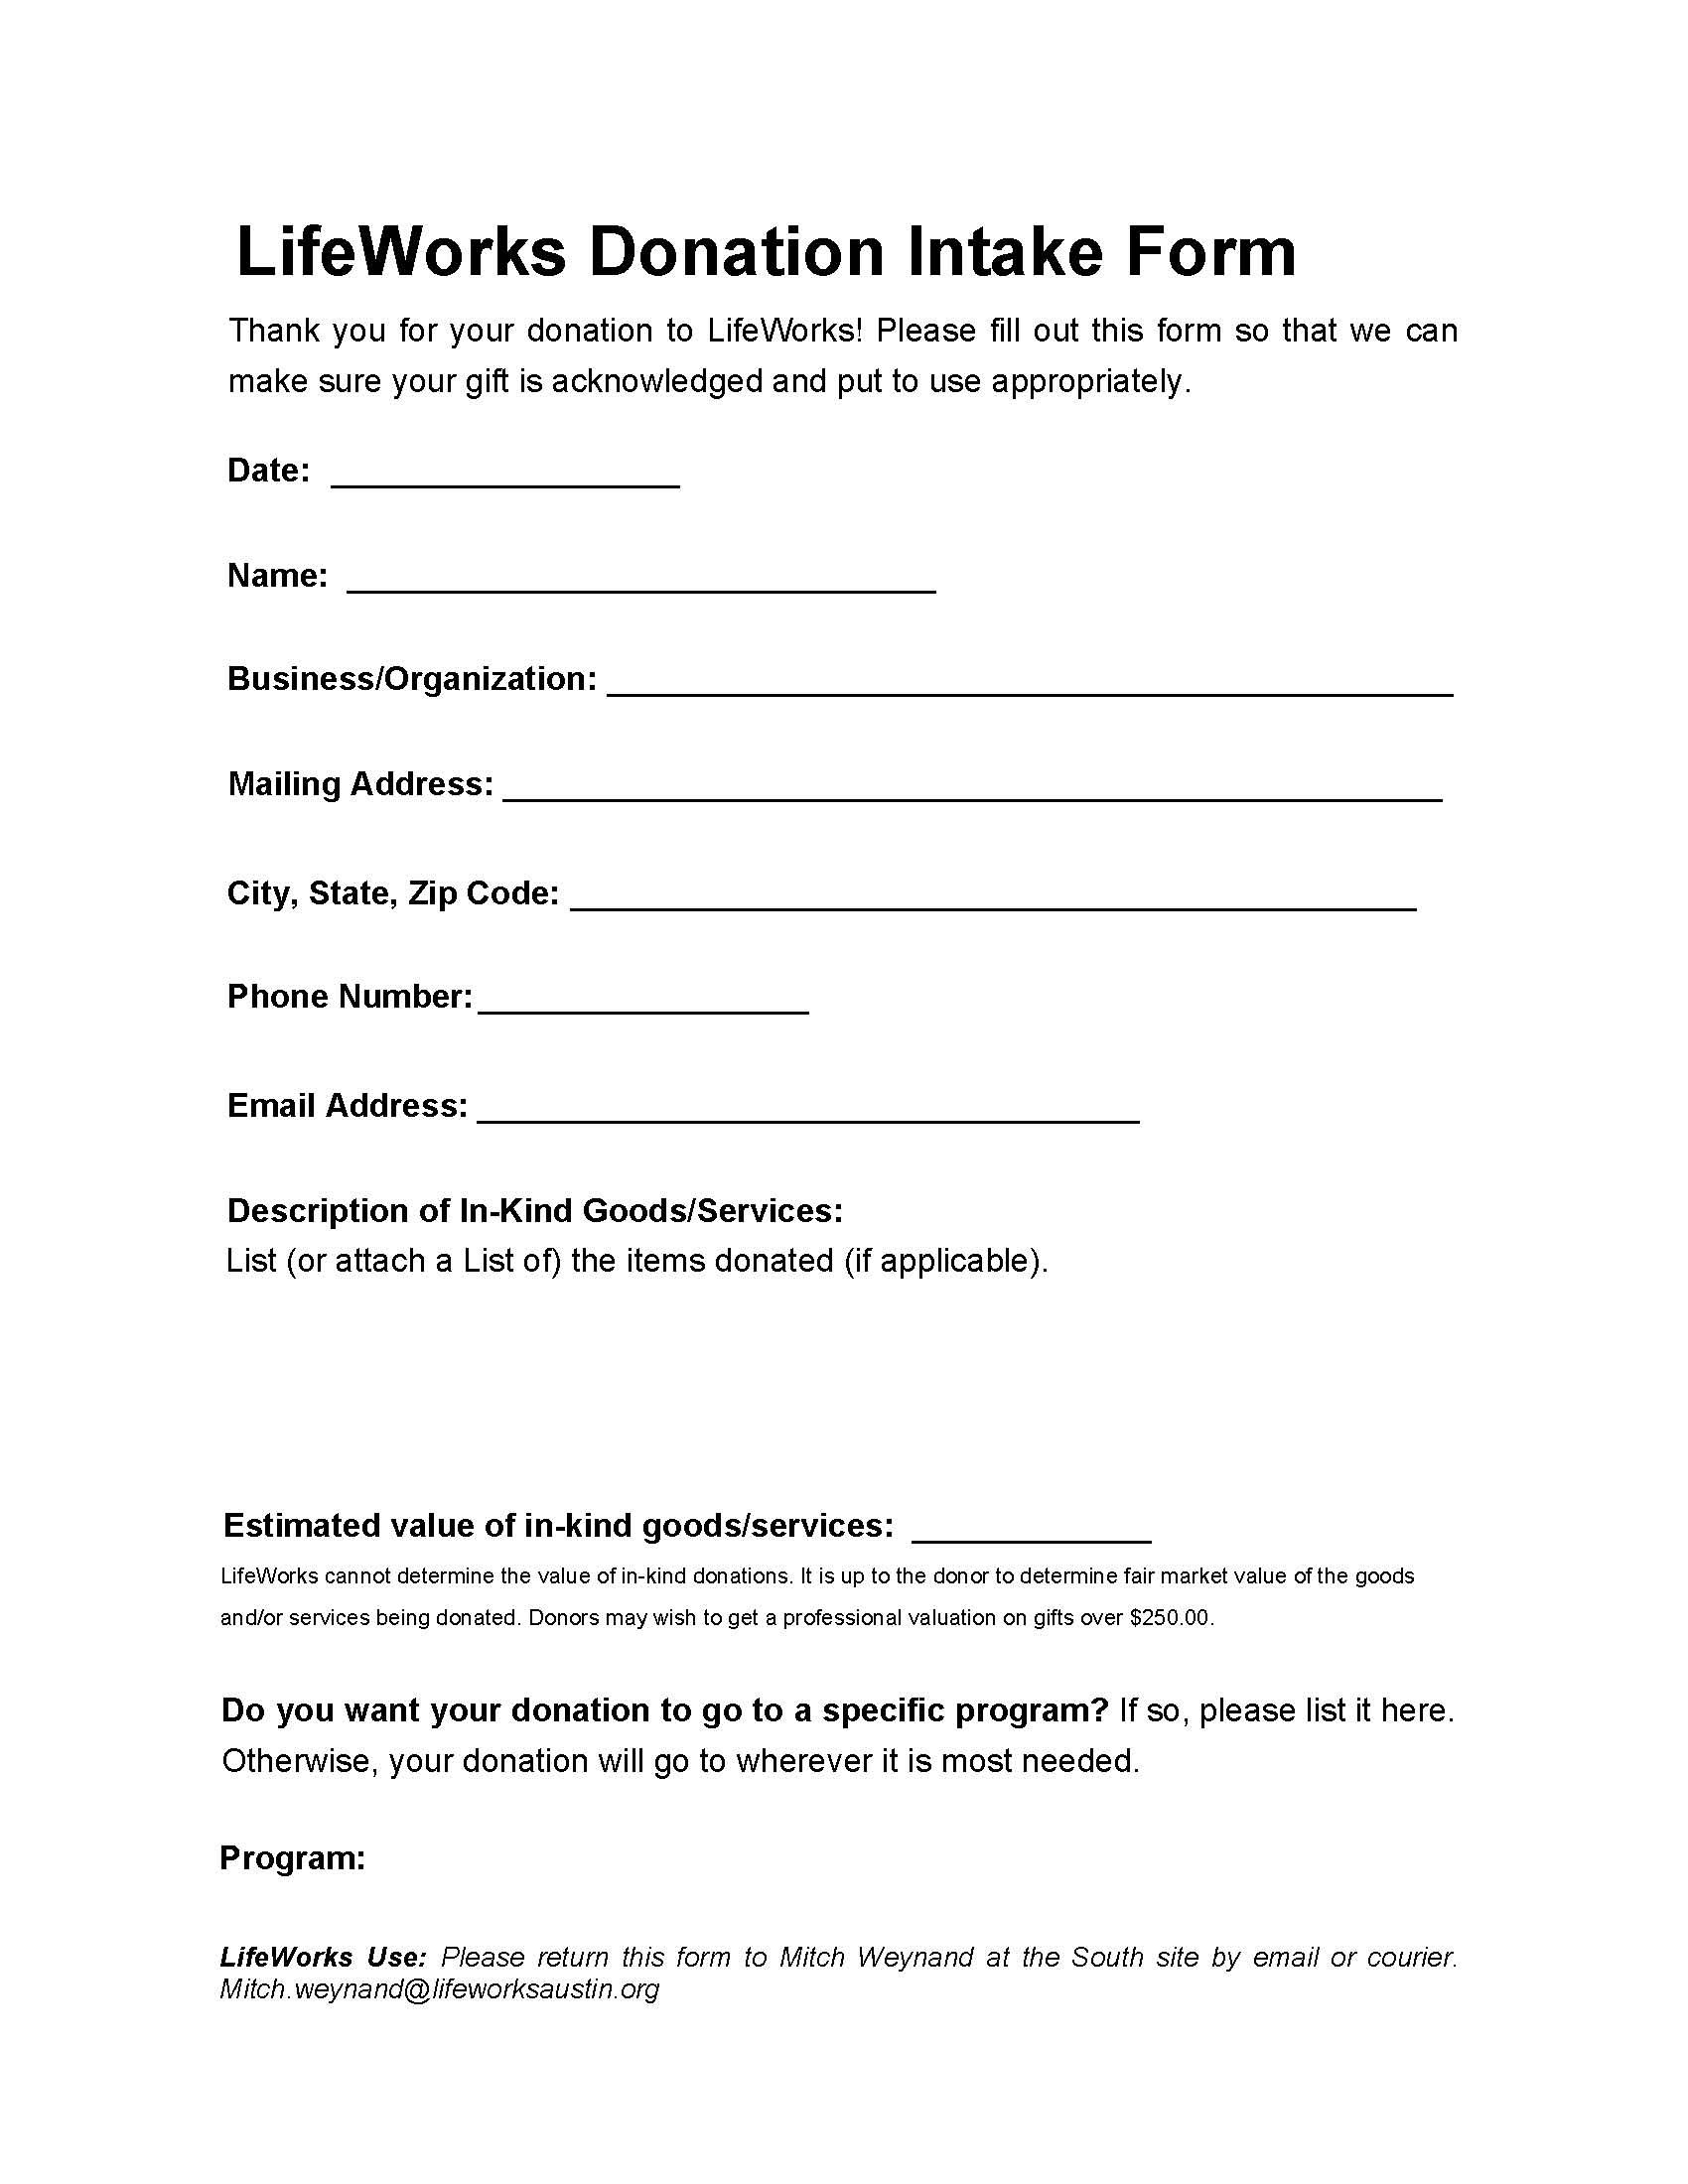 All Donations To Lifeworks Are Tax Deductible Be Sure To Bring A Copy Of The Donation Intake